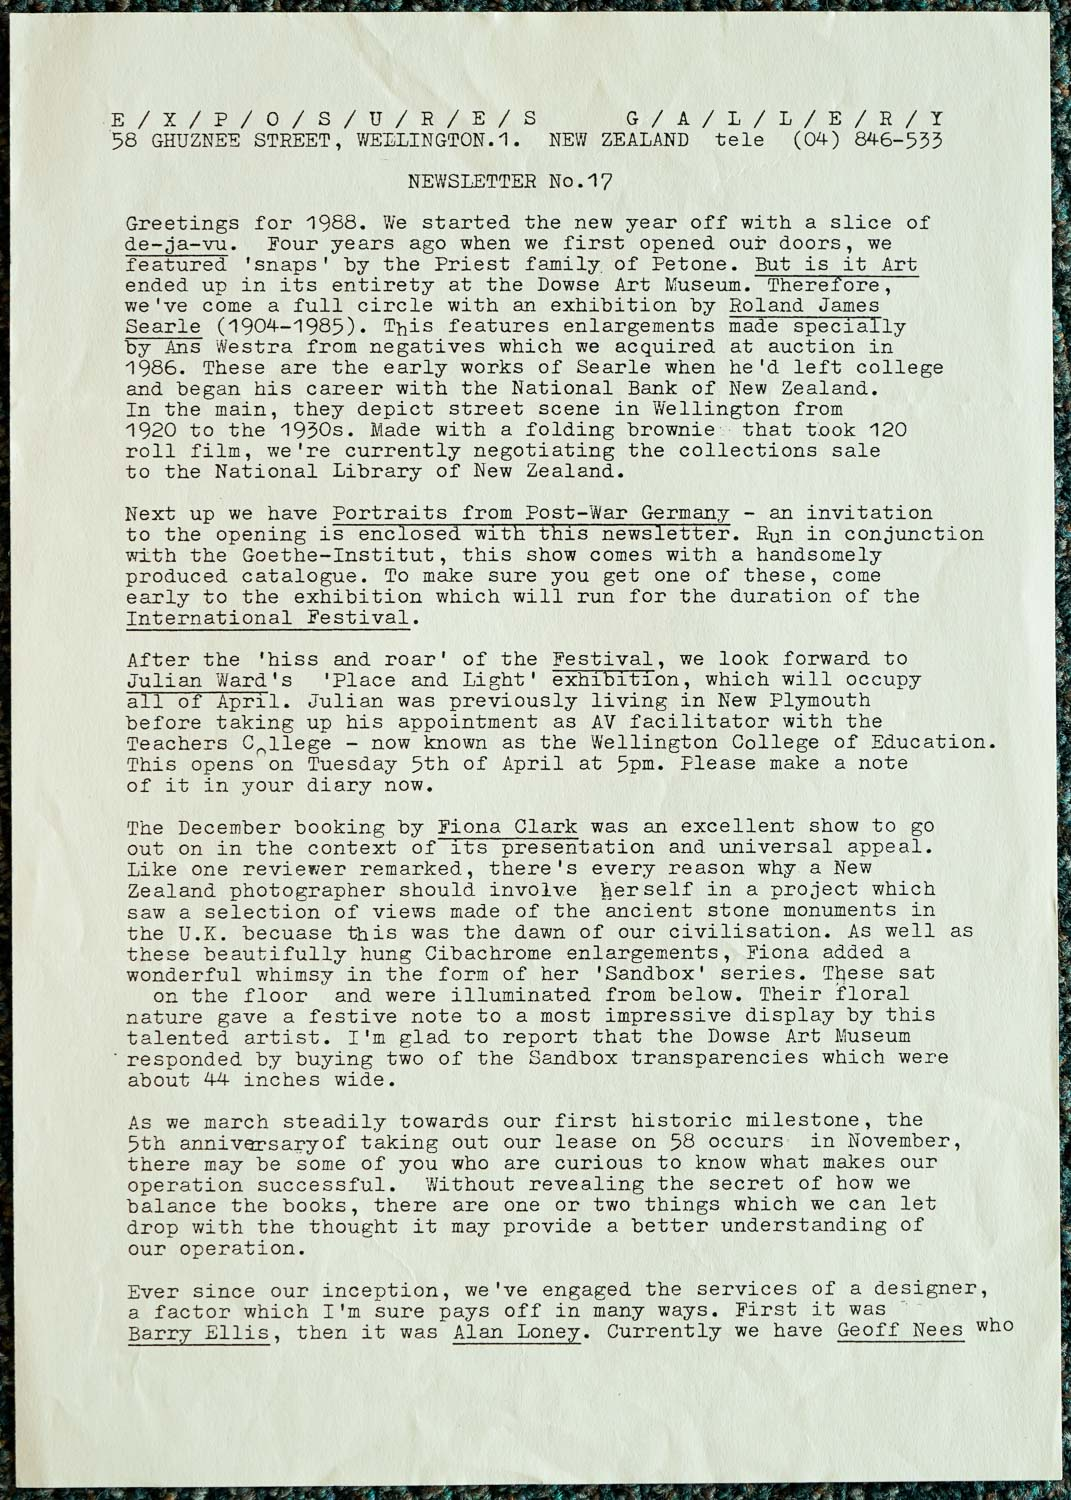 Exposures Gallery Newsletter No.17, February 1988